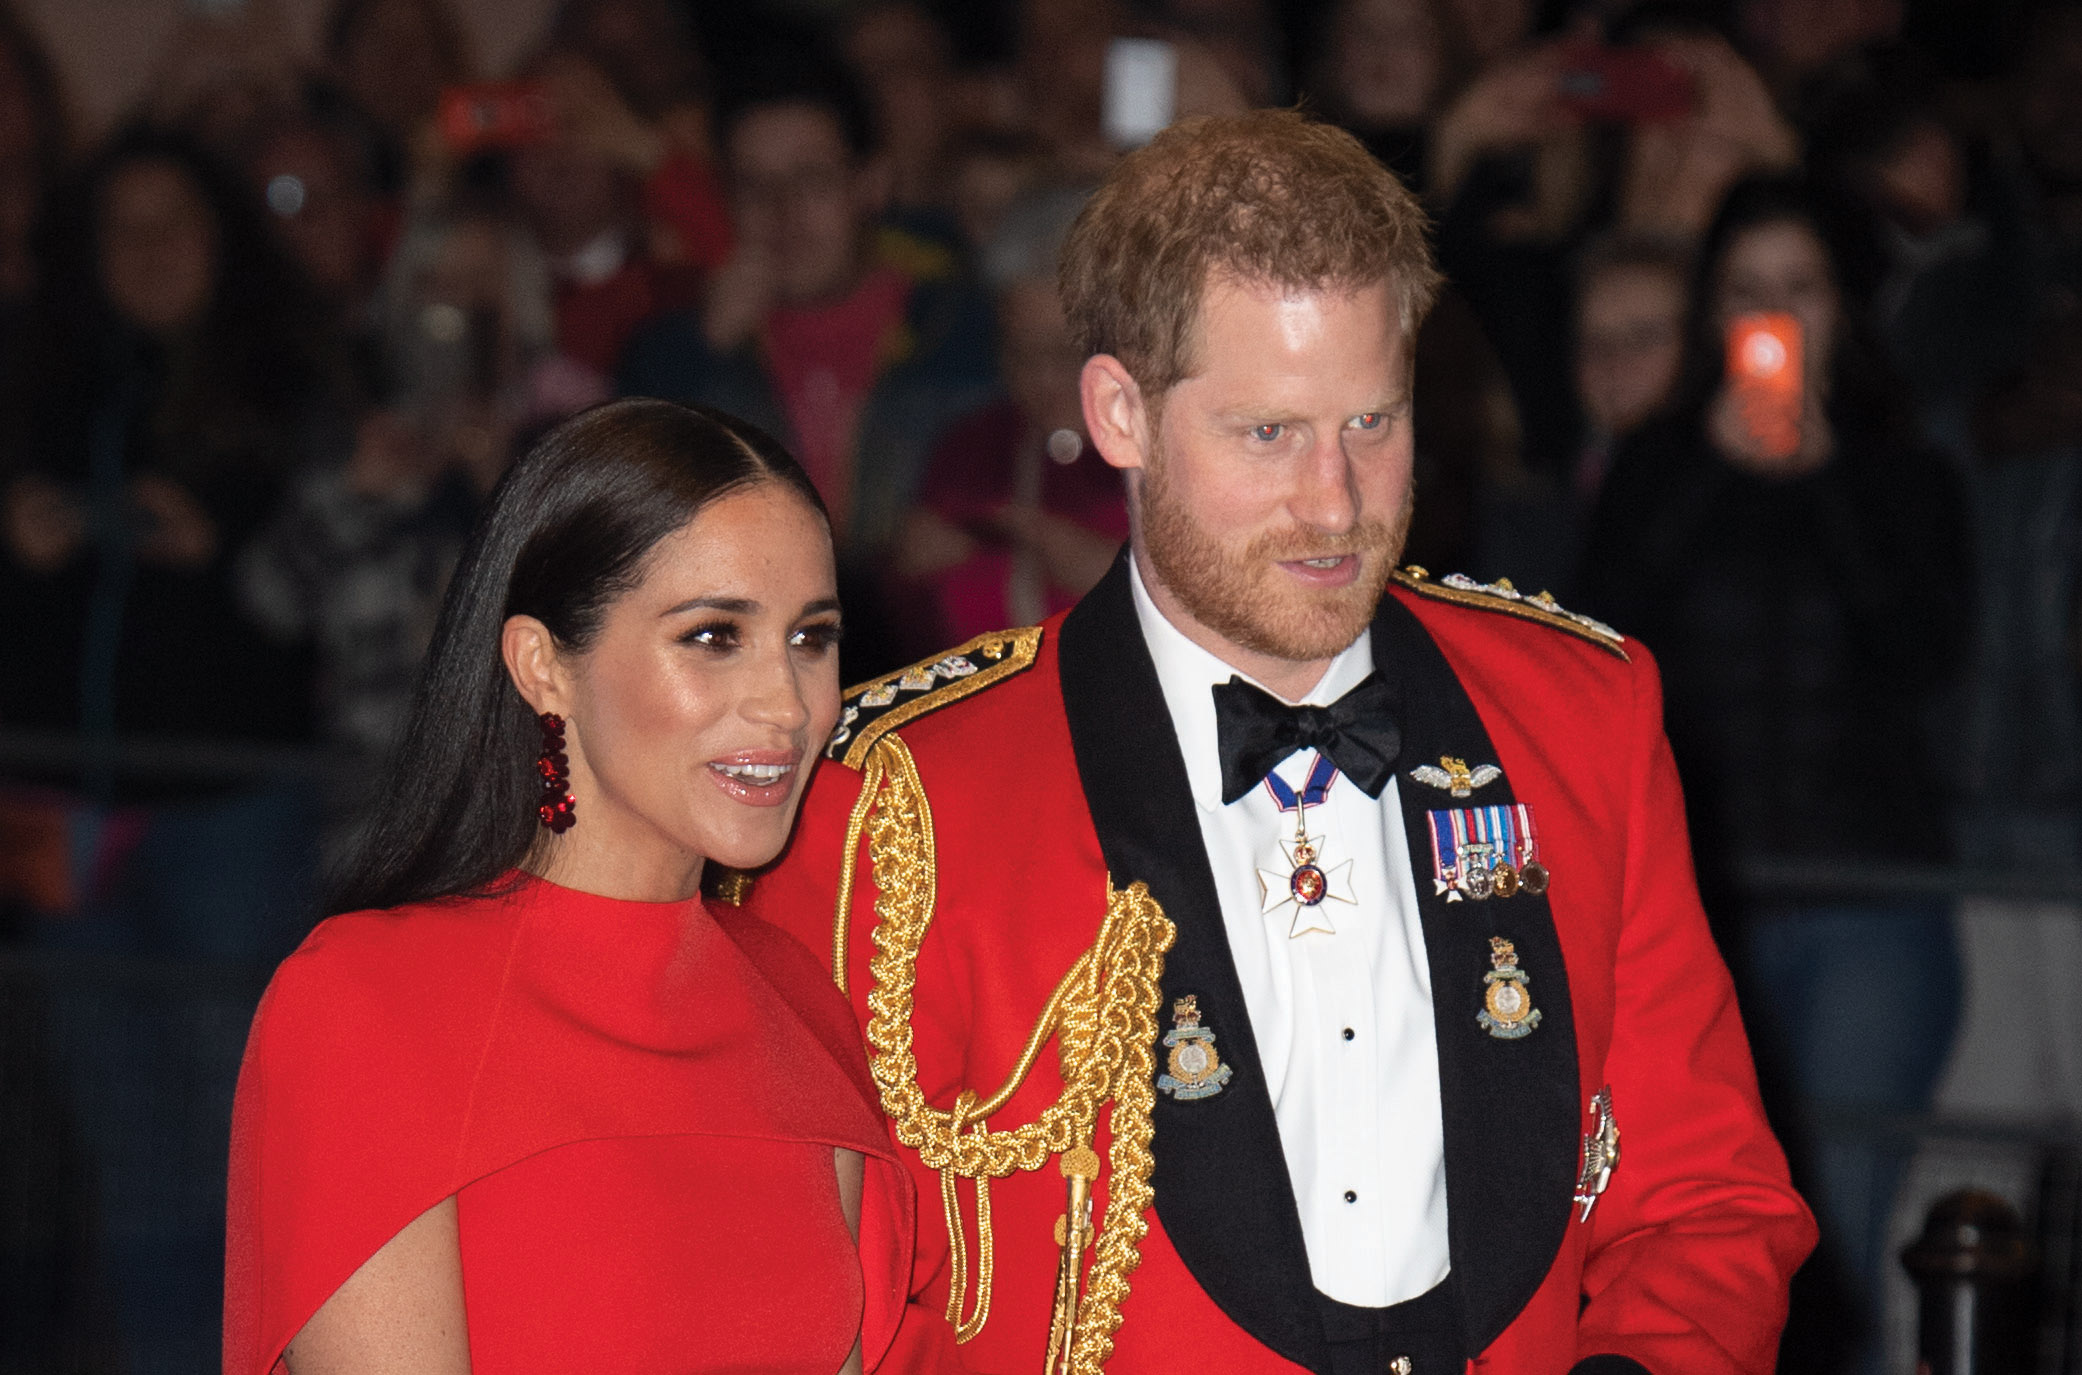 Meghan and Harry arrange private security as Trump refuses to foot the bill